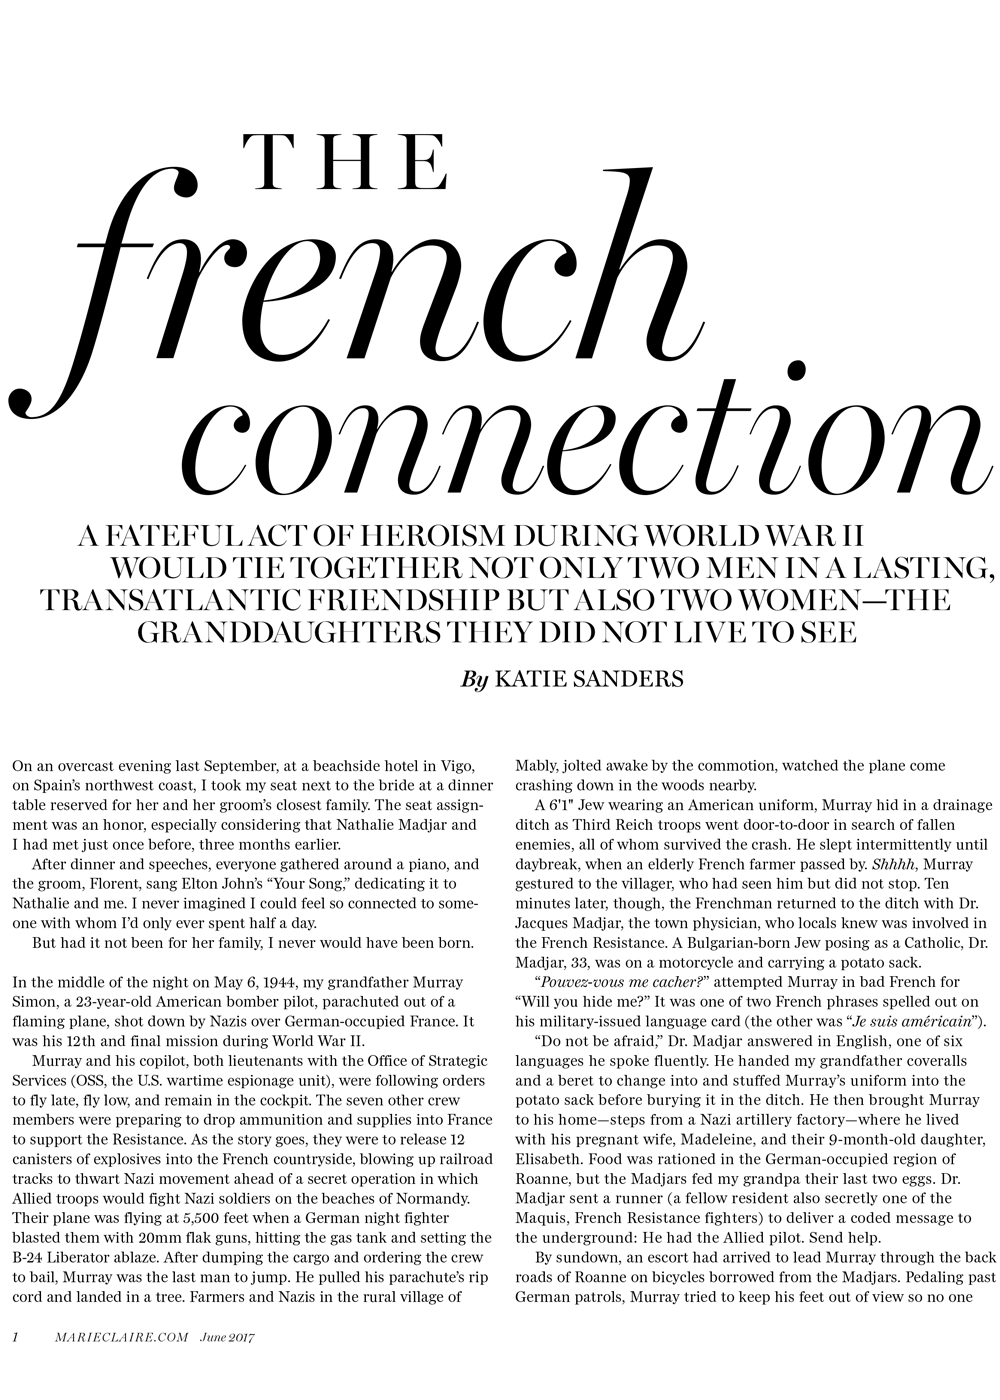 Katie-Sanders-clip-1_TheFrenchConnection-Marie-Claire-June-2017-1.png